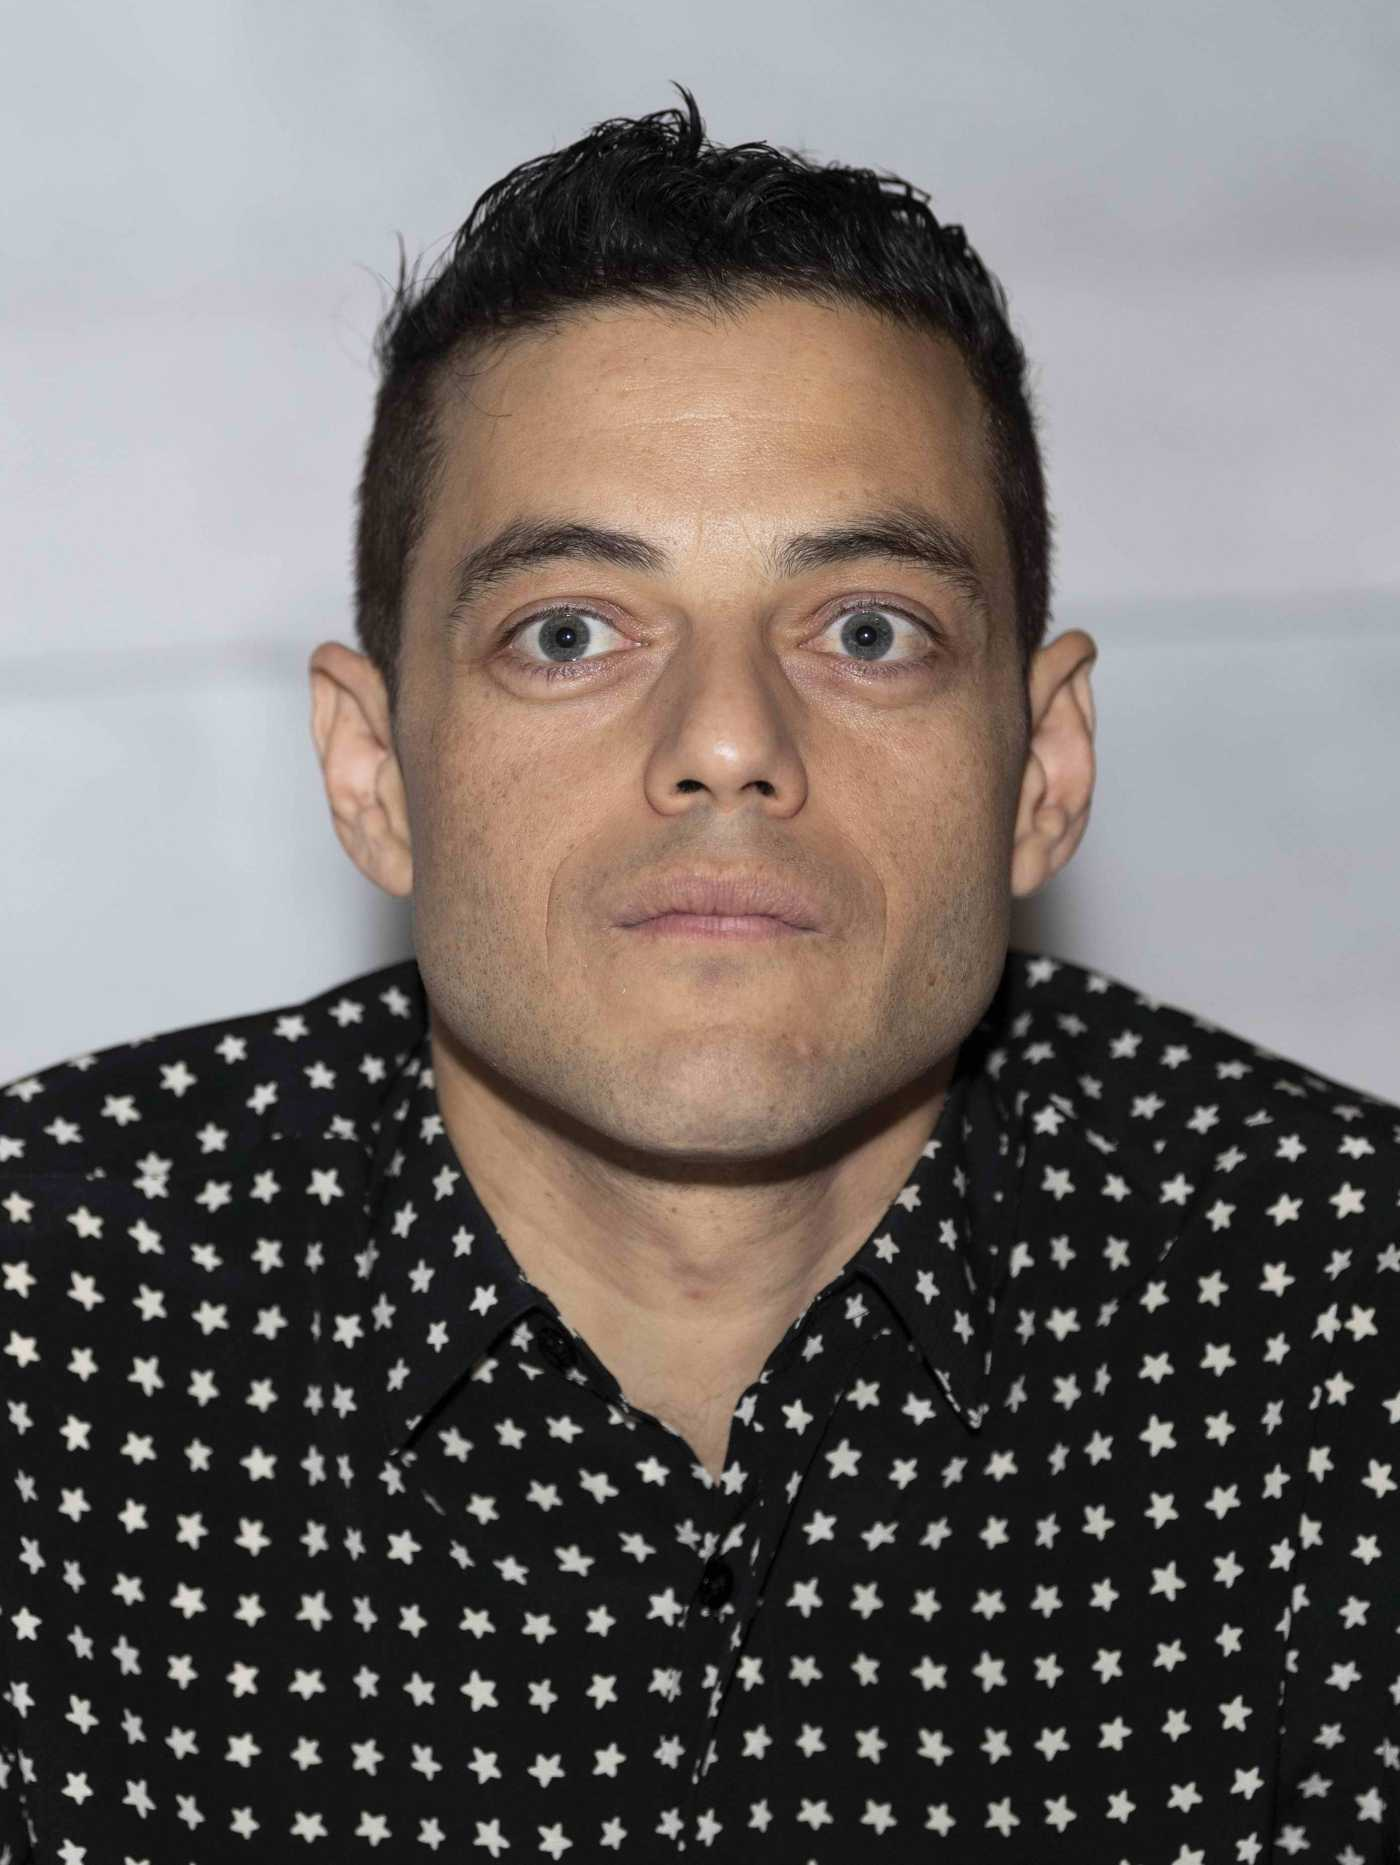 Rami Malek Attends Mr Robot TV Show Photocall in New York 06/17/2019